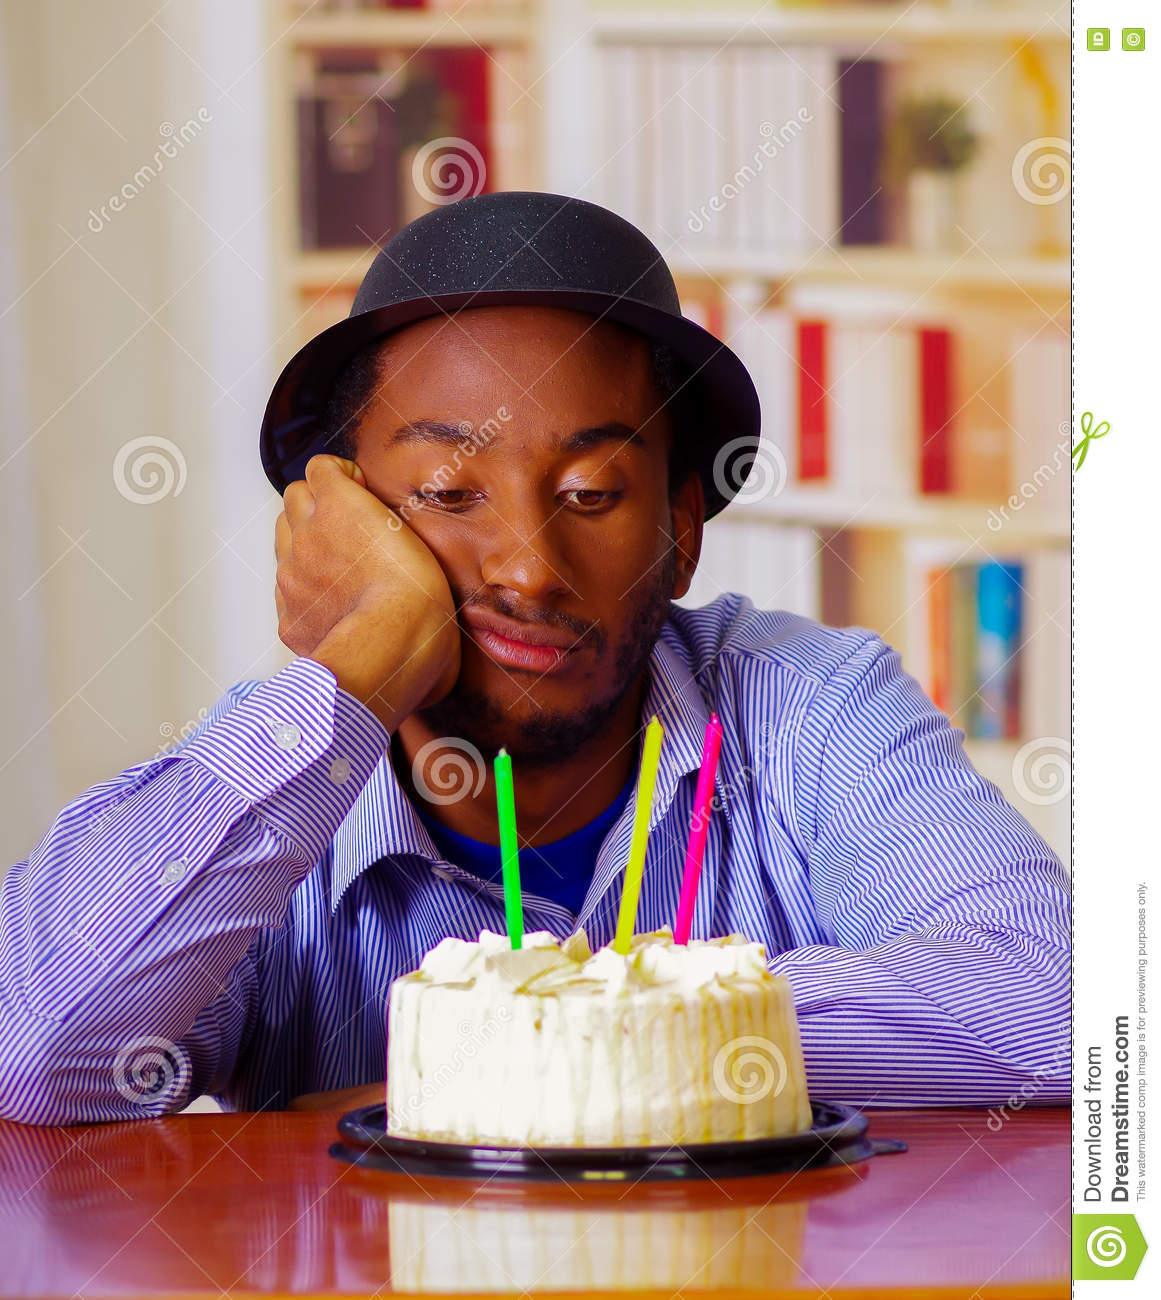 Charming Man Wearing Blue Shirt And Hat Sitting By Table With Birthday Cake In Front